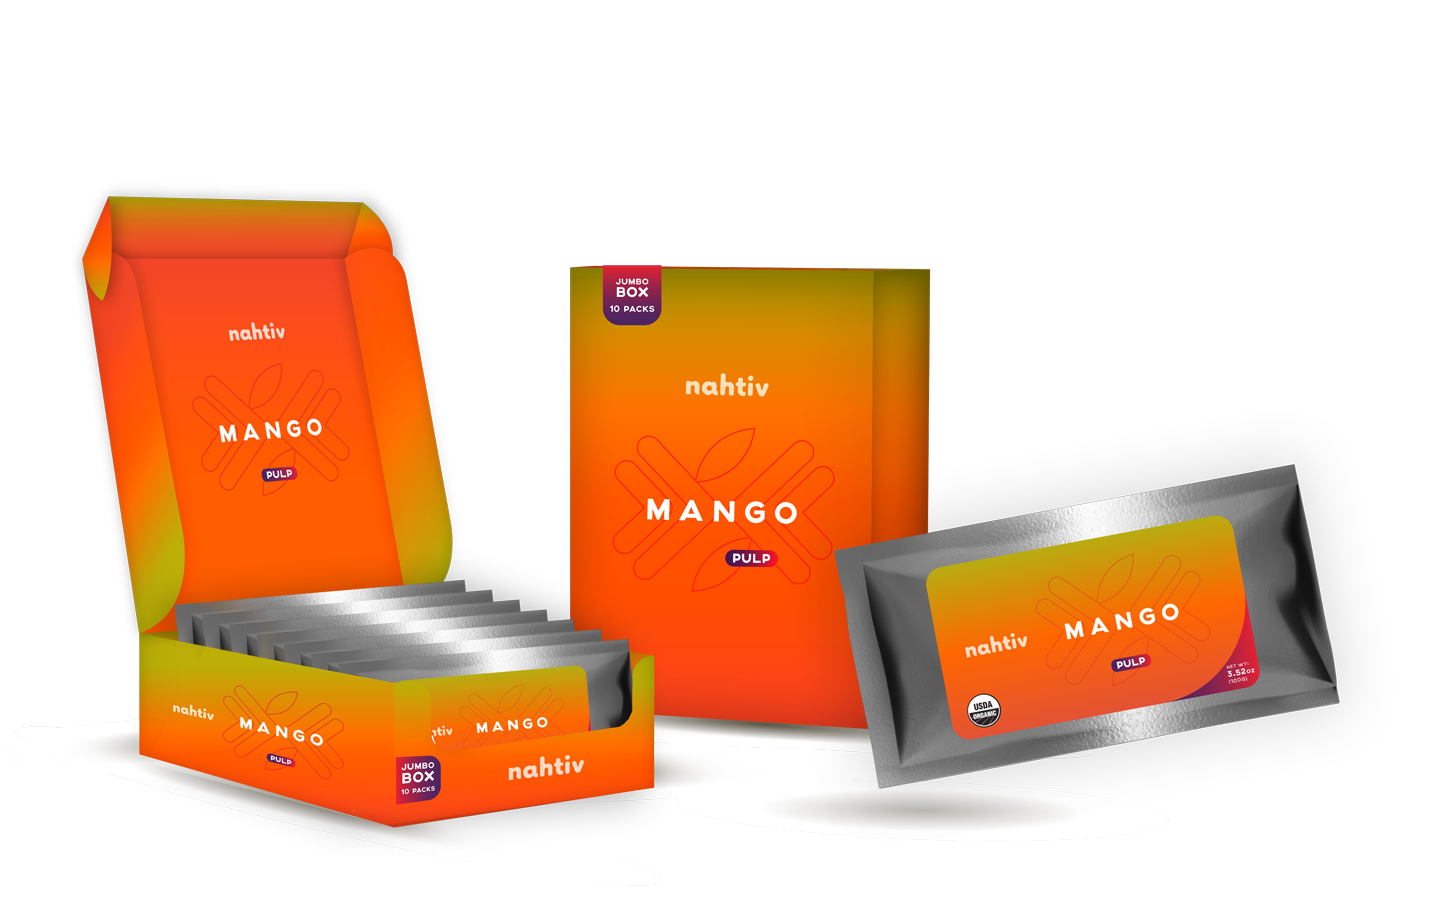 Nahtiv MANGO PULP BOX (pack with 30)   Also known as the King of Fruits, Mangos are tropical fruits that belong to the same family as that of Pistachios, Gandaria, Mombin, and Cashews. Beyond the sweet, luscious taste of Mangos, they also contain an abundance of vitamins, minerals and antioxidants that assure your optimum health.